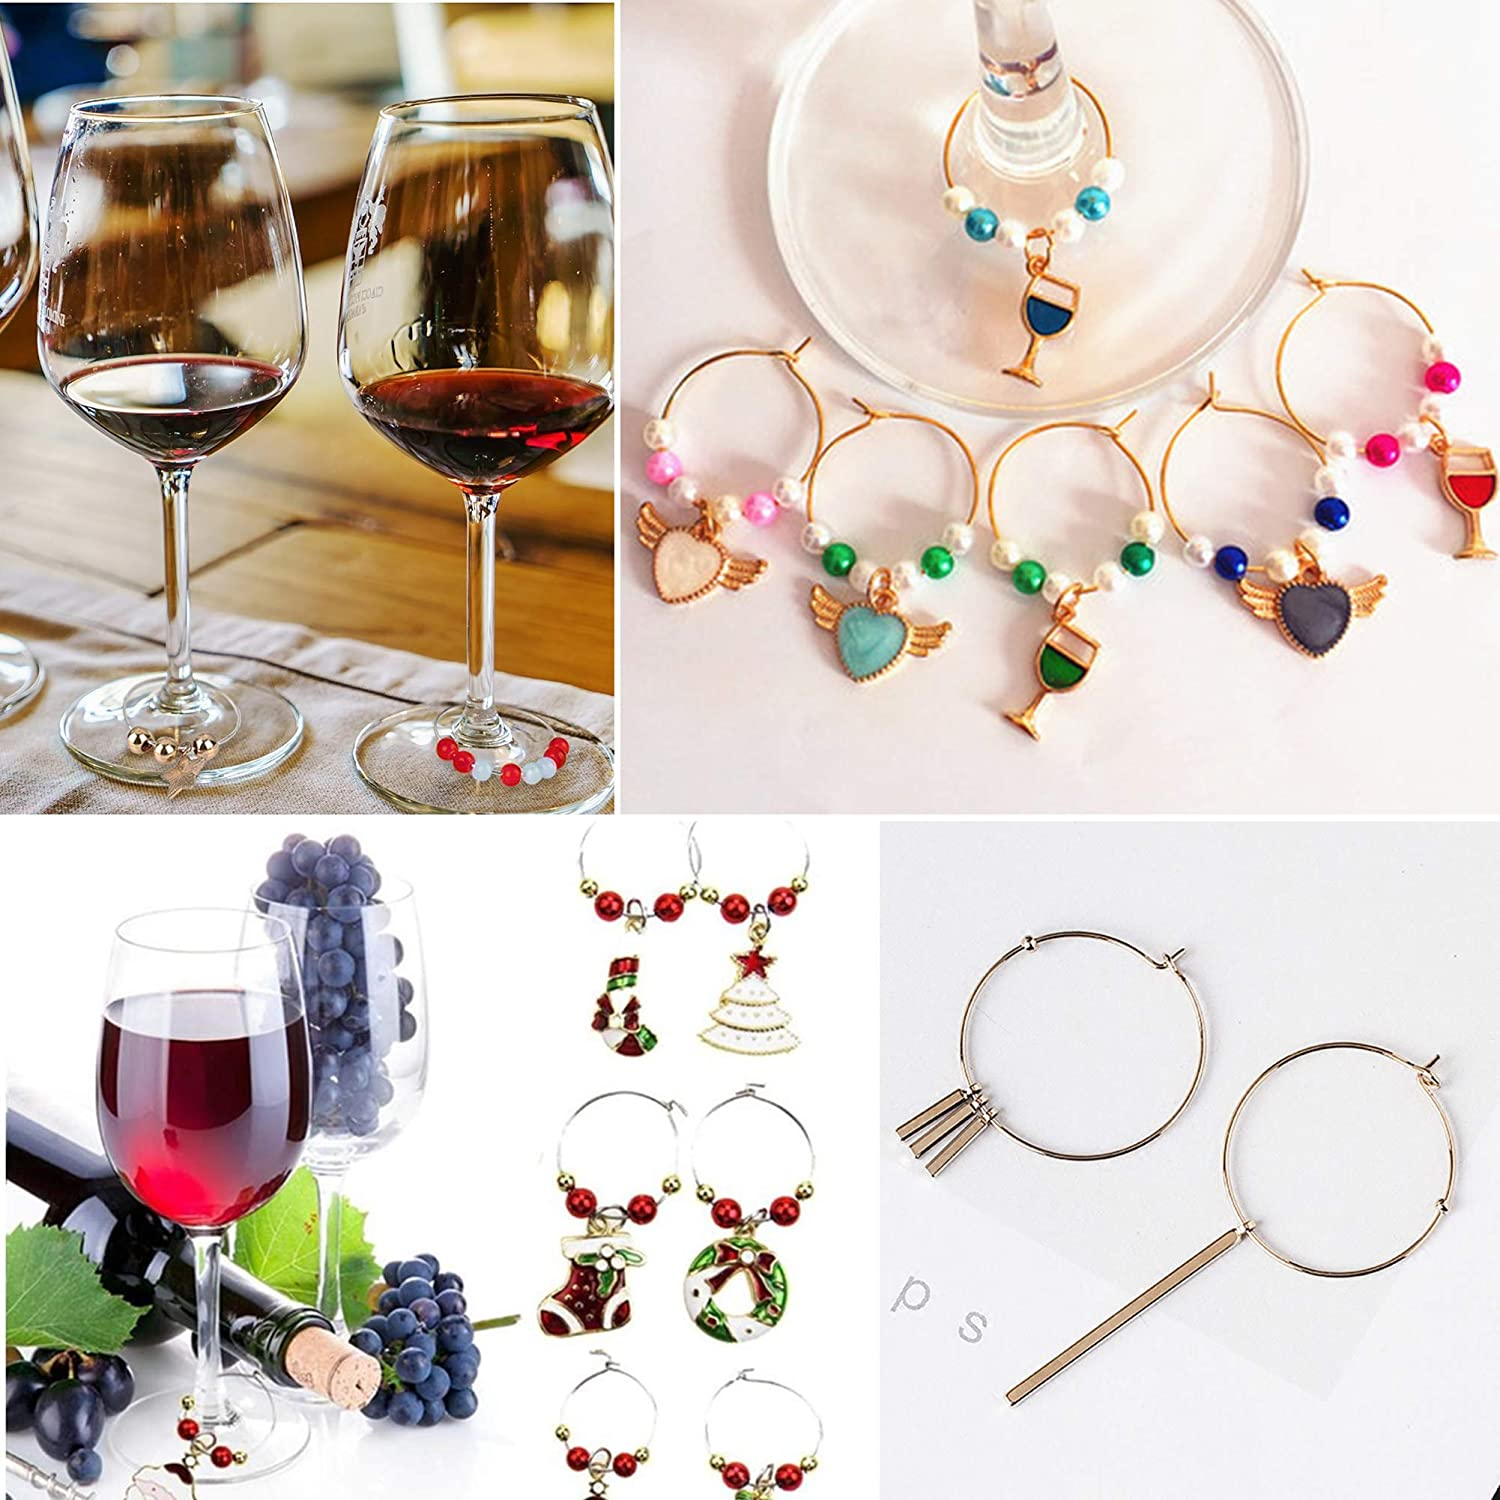 TOAOB 100pcs Gold Tone Wine Glass Charm Rings Earring Beading Hoop 35mm for Party Favor